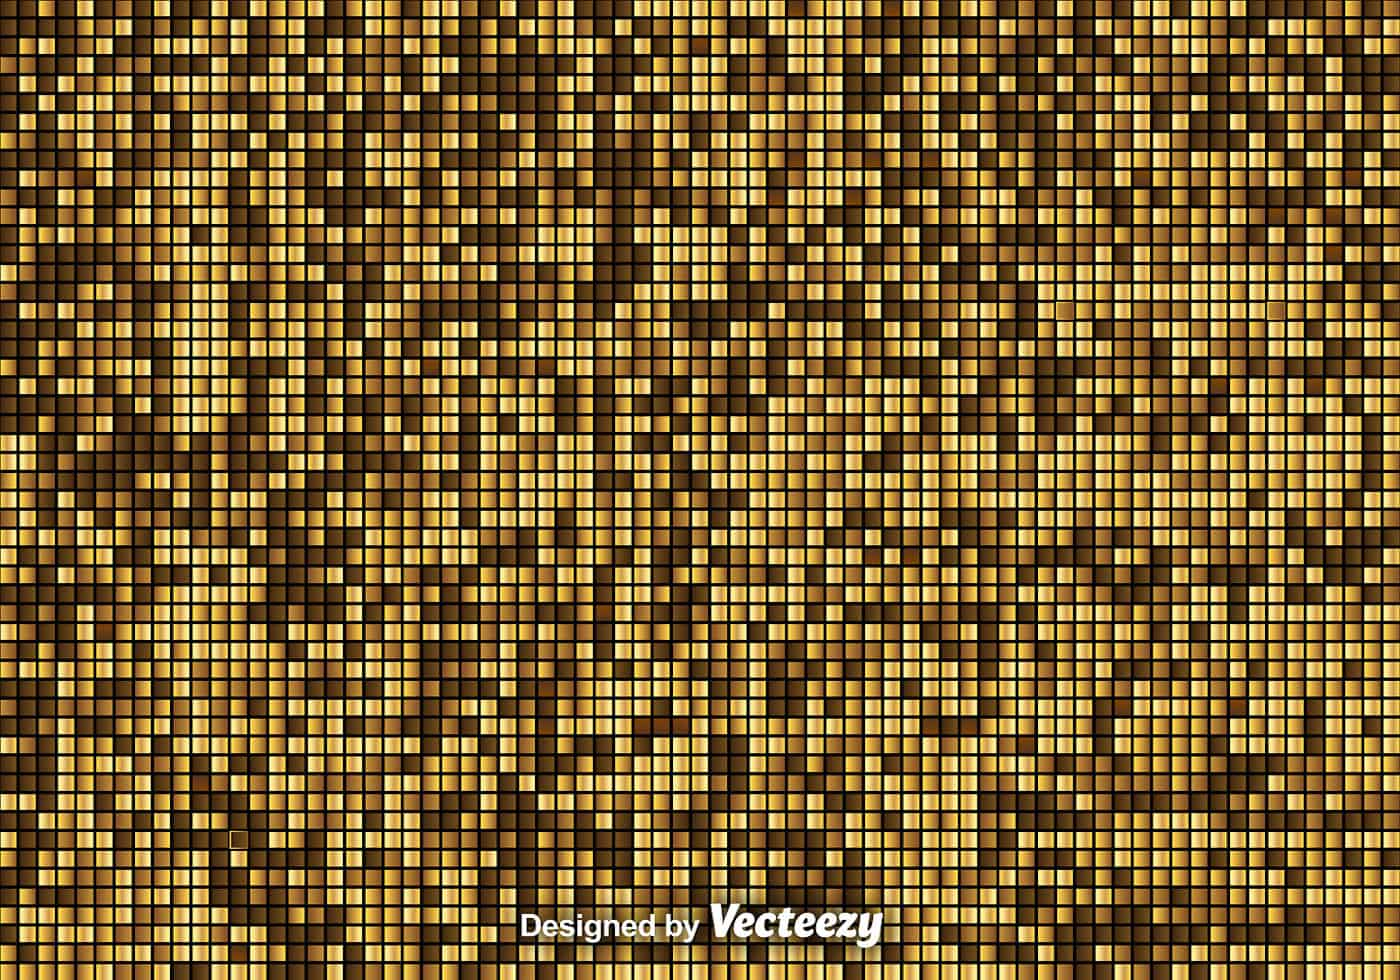 Mosaic Free Vector Art 1864 Free Downloads